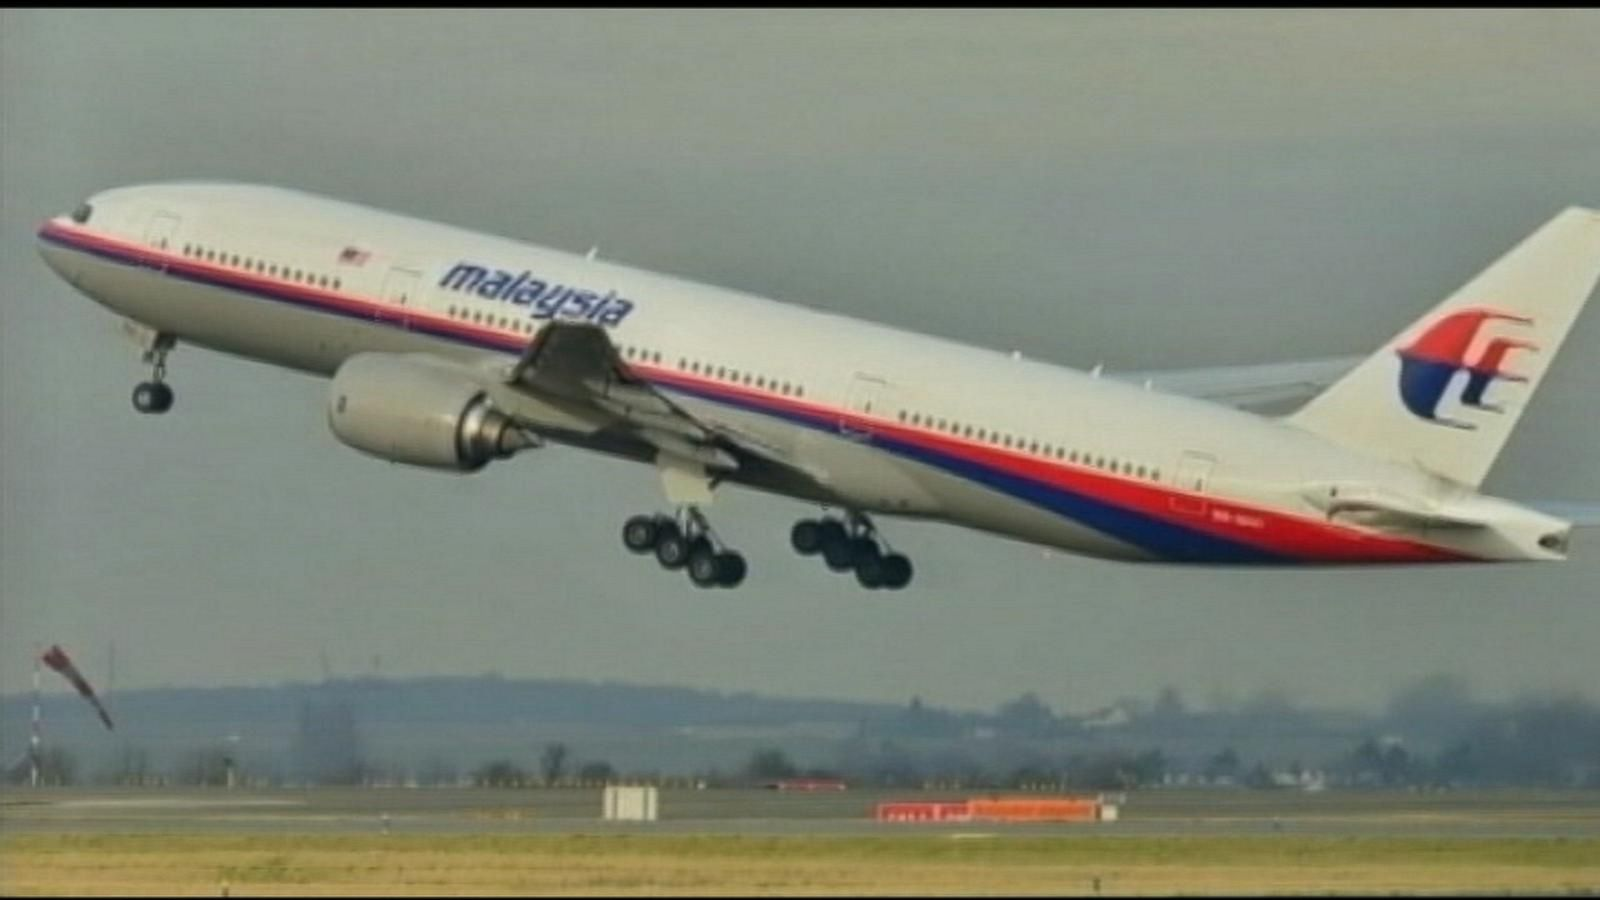 VIDEO: Officials Call Off Search for Missing Flight MH370